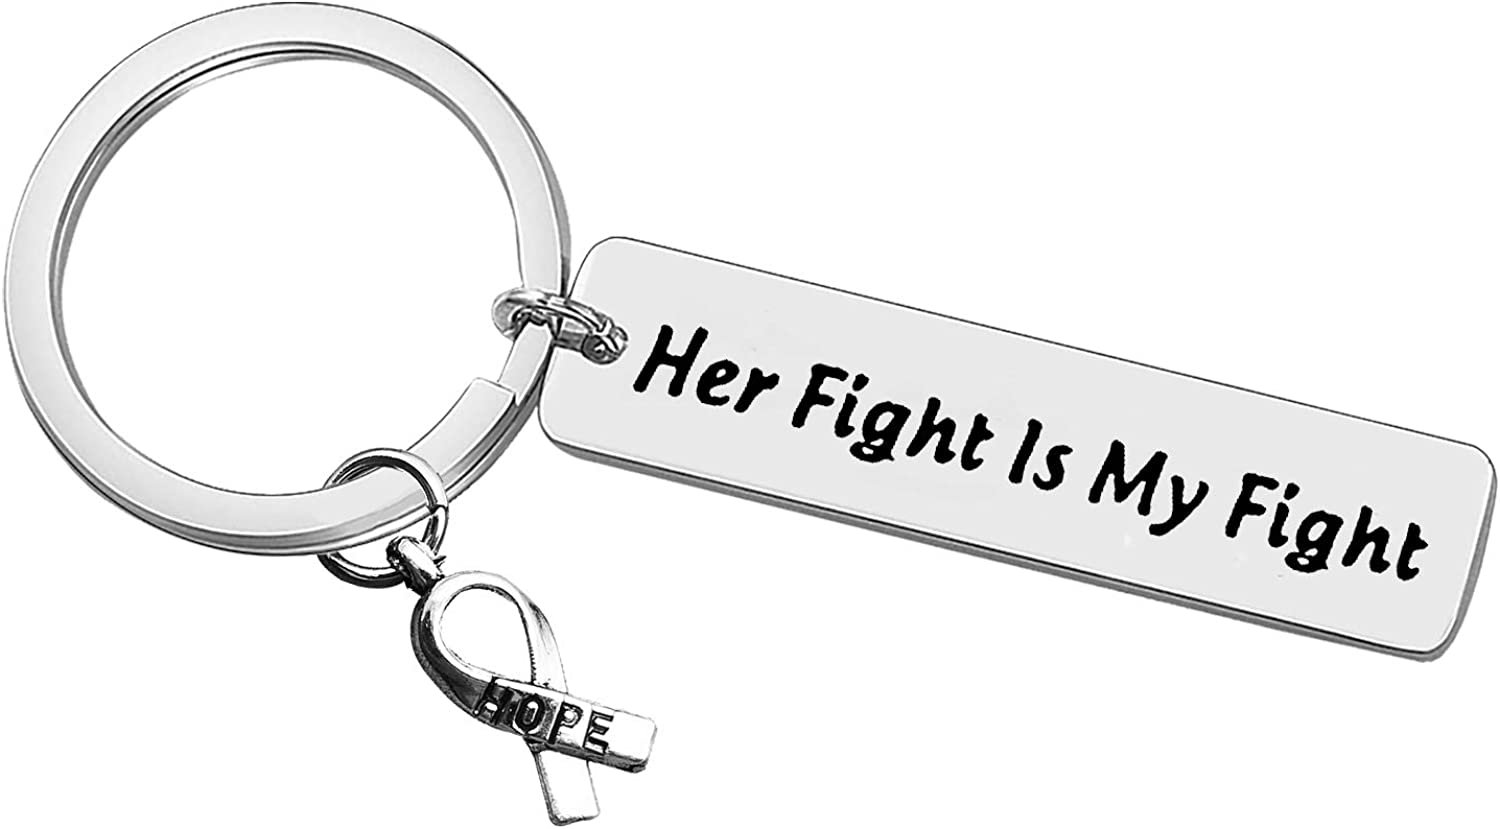 Cancer Awareness Keychain Cancer Survivor Gift Cancer Fighter Gift Her Fight is My Fight Hope Keychain Cancer Fighter Anti-Cancer Strong Inspirational Gifts Recovery Keyring Gifts for Women Girls